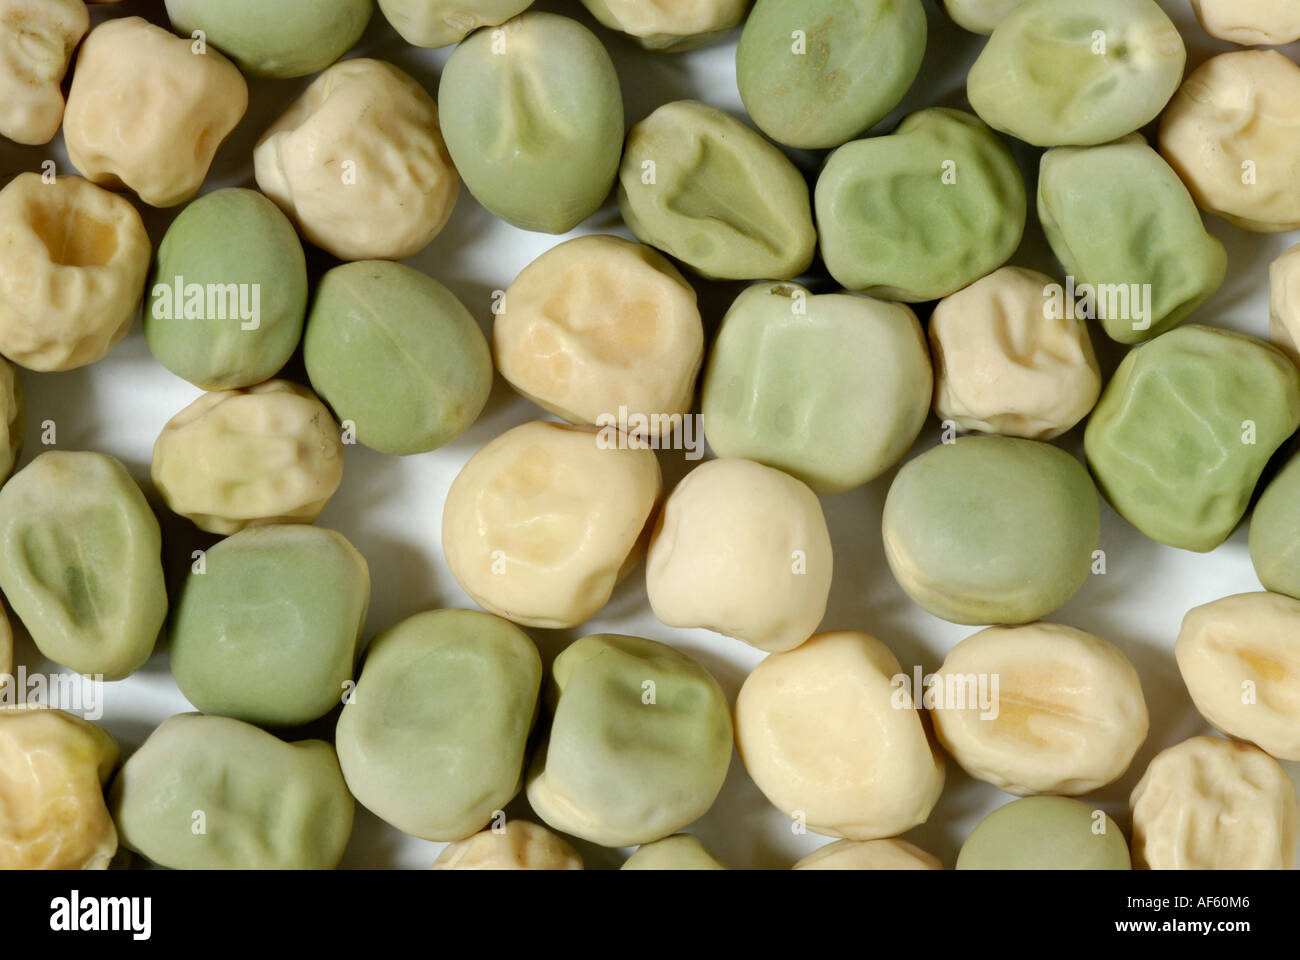 Pea seeds green, yellow, smooth, wrinkled, traits Gregor Mendel studied in his genetics heredity experiments. - Stock Image